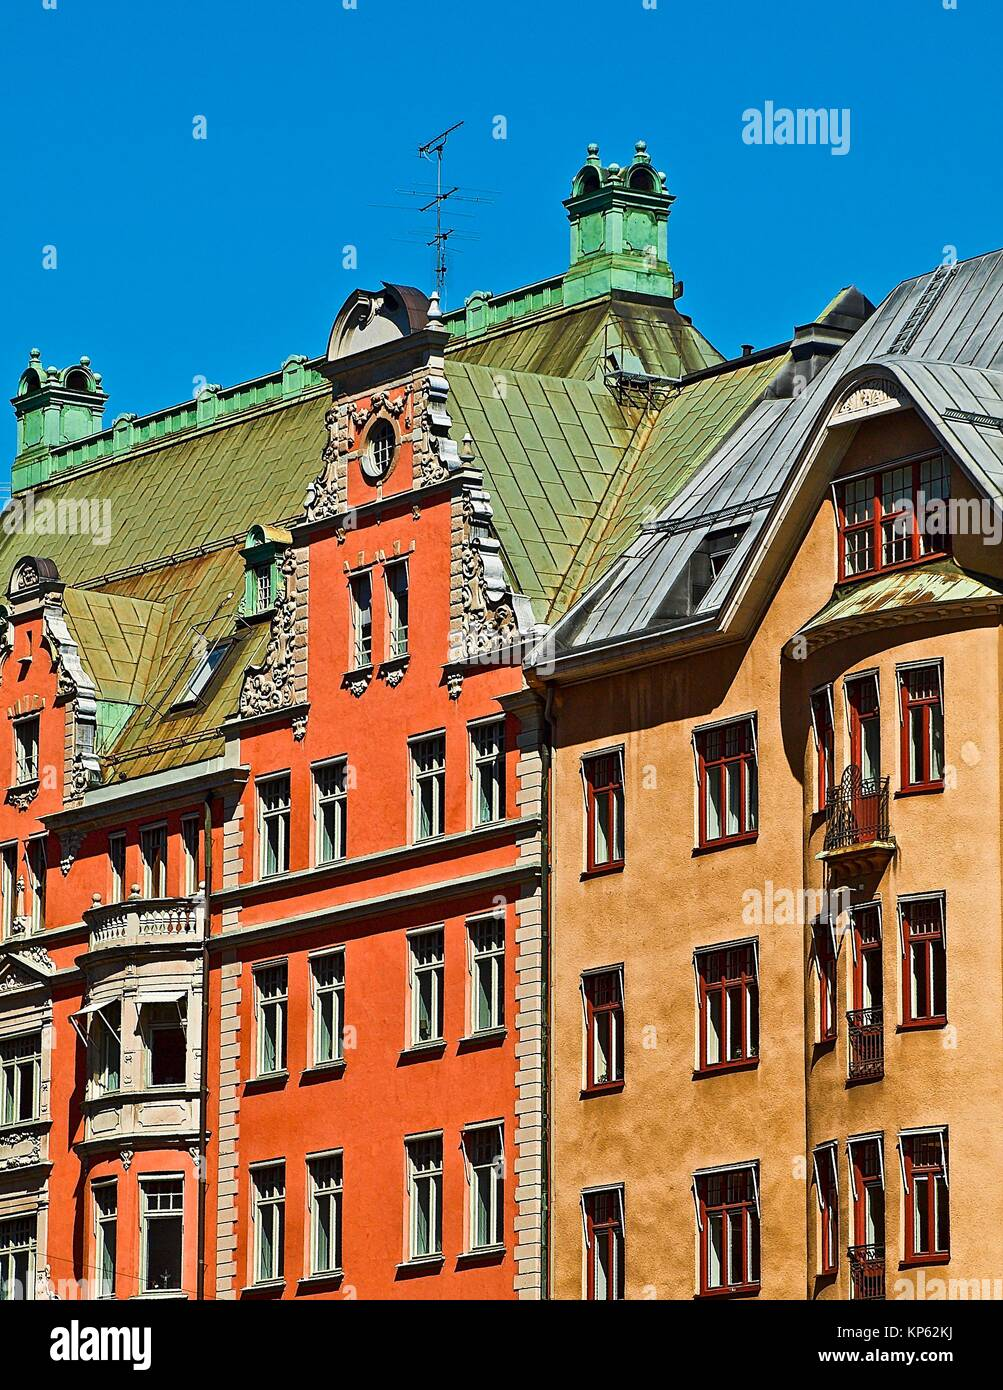 Houses in Stockholm, Sweden. - Stock Image